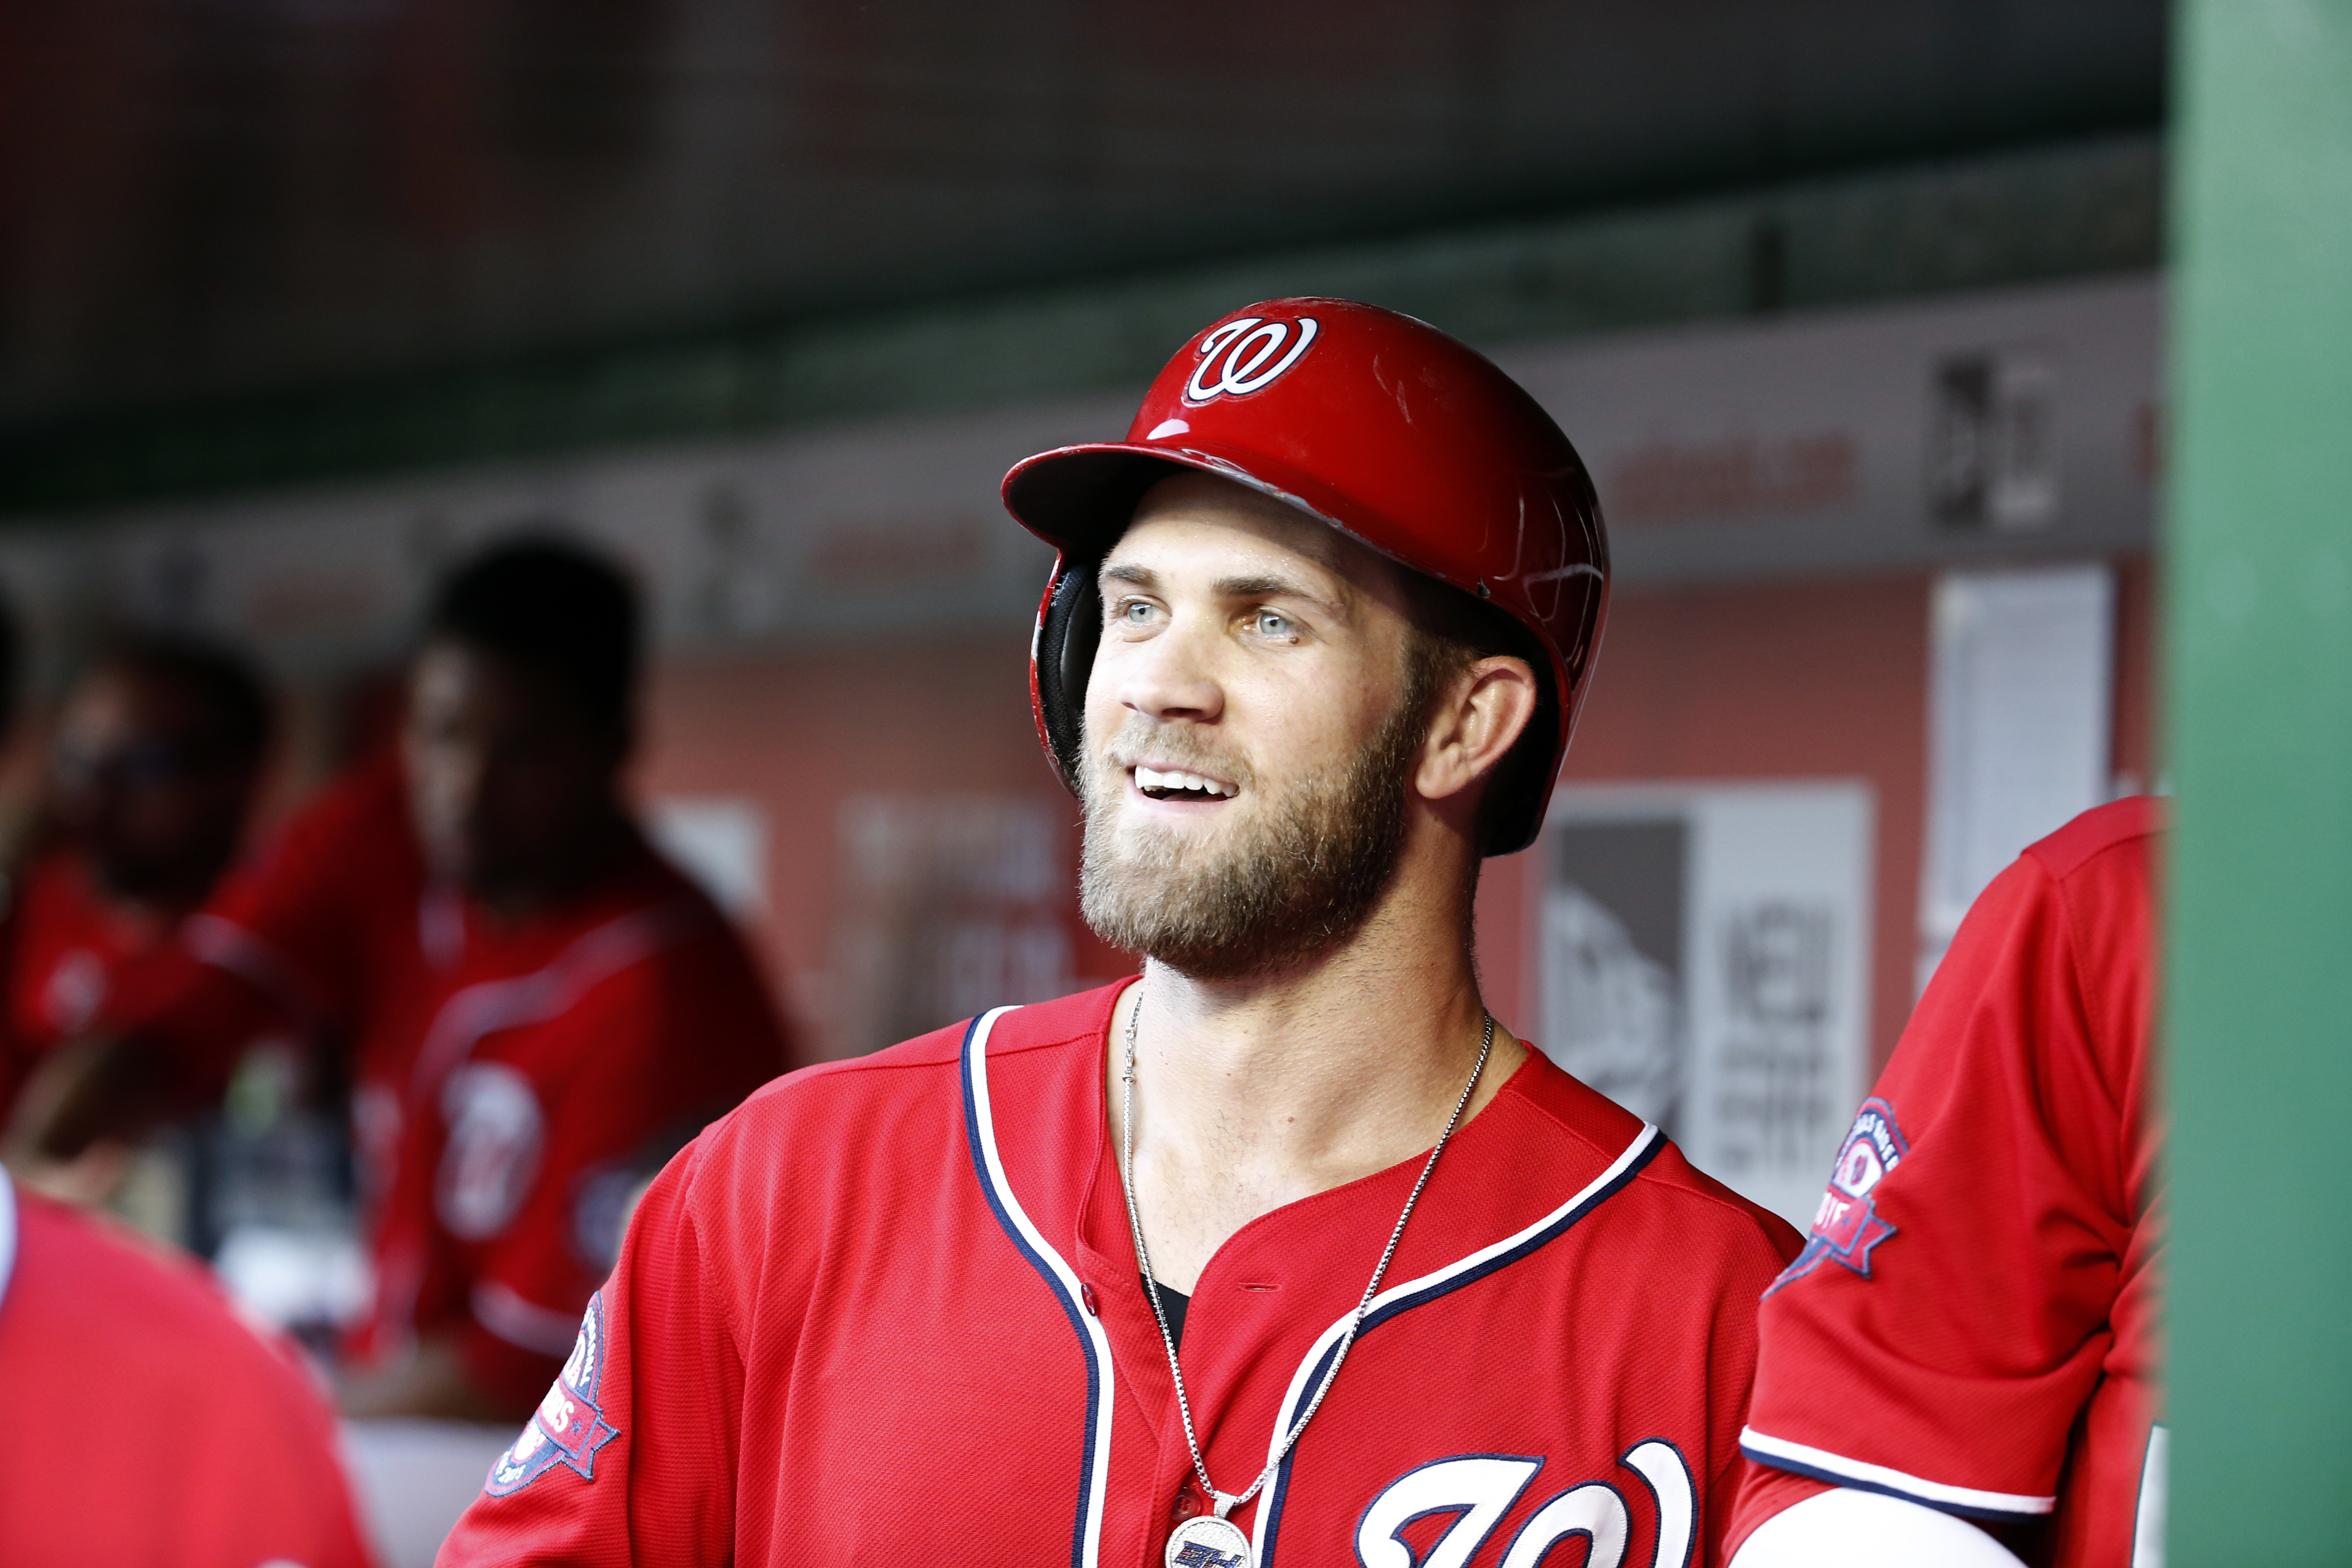 In this photo taken Sept. 19, 2015, Washington Nationals right fielder Bryce Harper (34) smiles in the dugout after hitting a two-run homer during a baseball game against the Miami Marlins at Nationals Park in Washington. Harper is a lot of things, namely